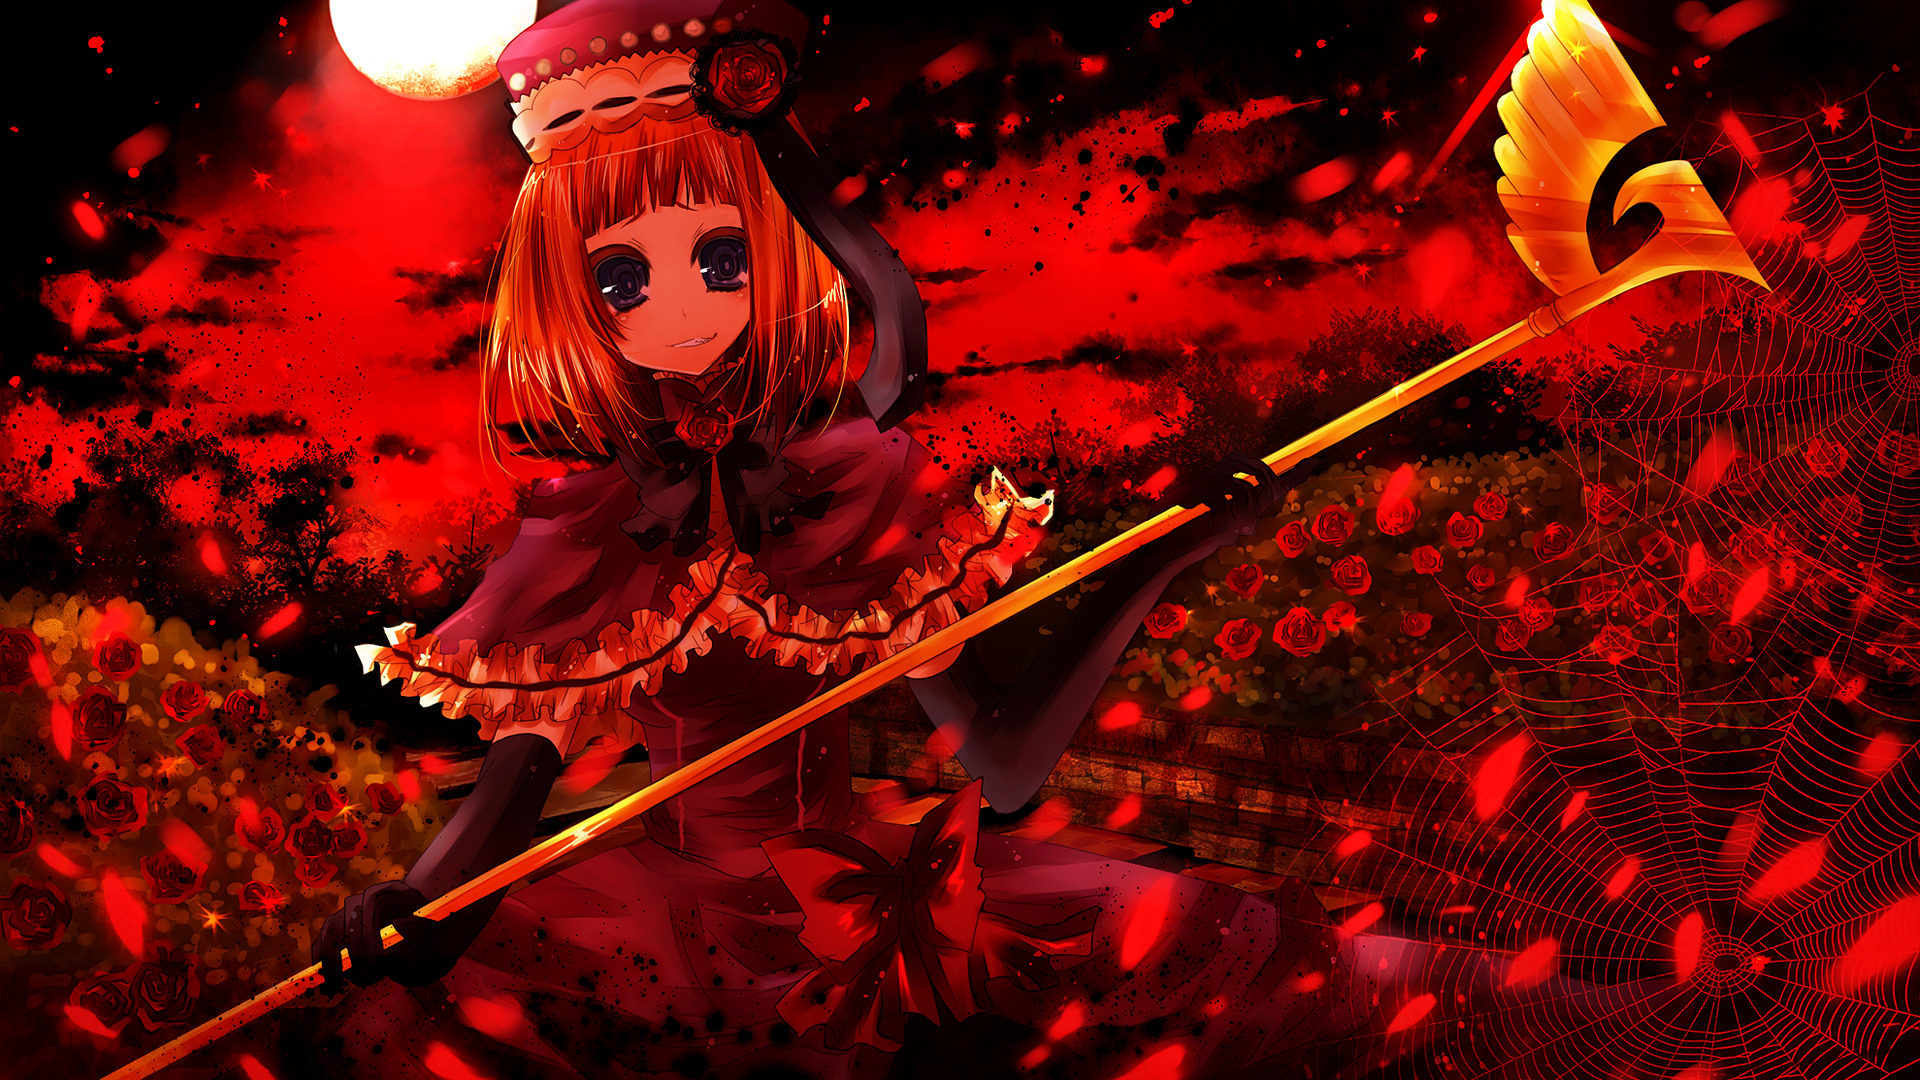 Eva-Beatrice umineko No naku HD Wallpaper